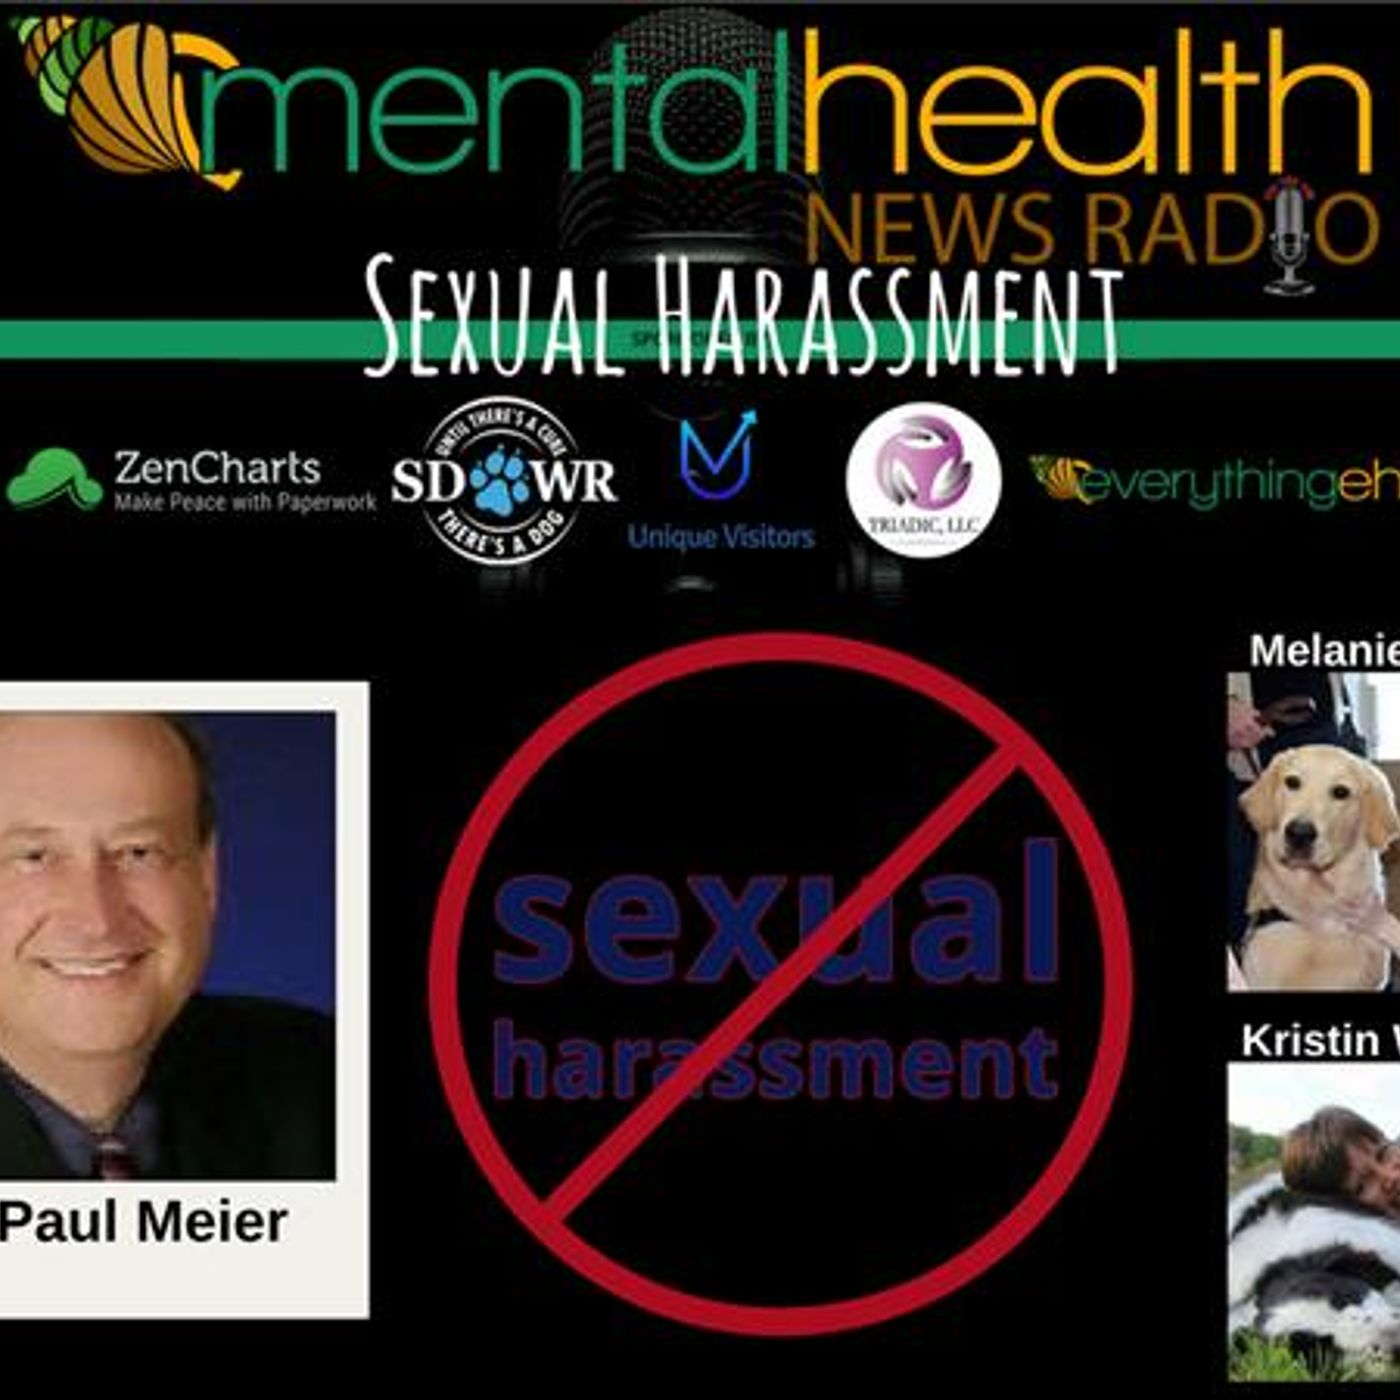 Mental Health News Radio - Round Table Discussions with Dr. Paul Meier: Sexual Harassment